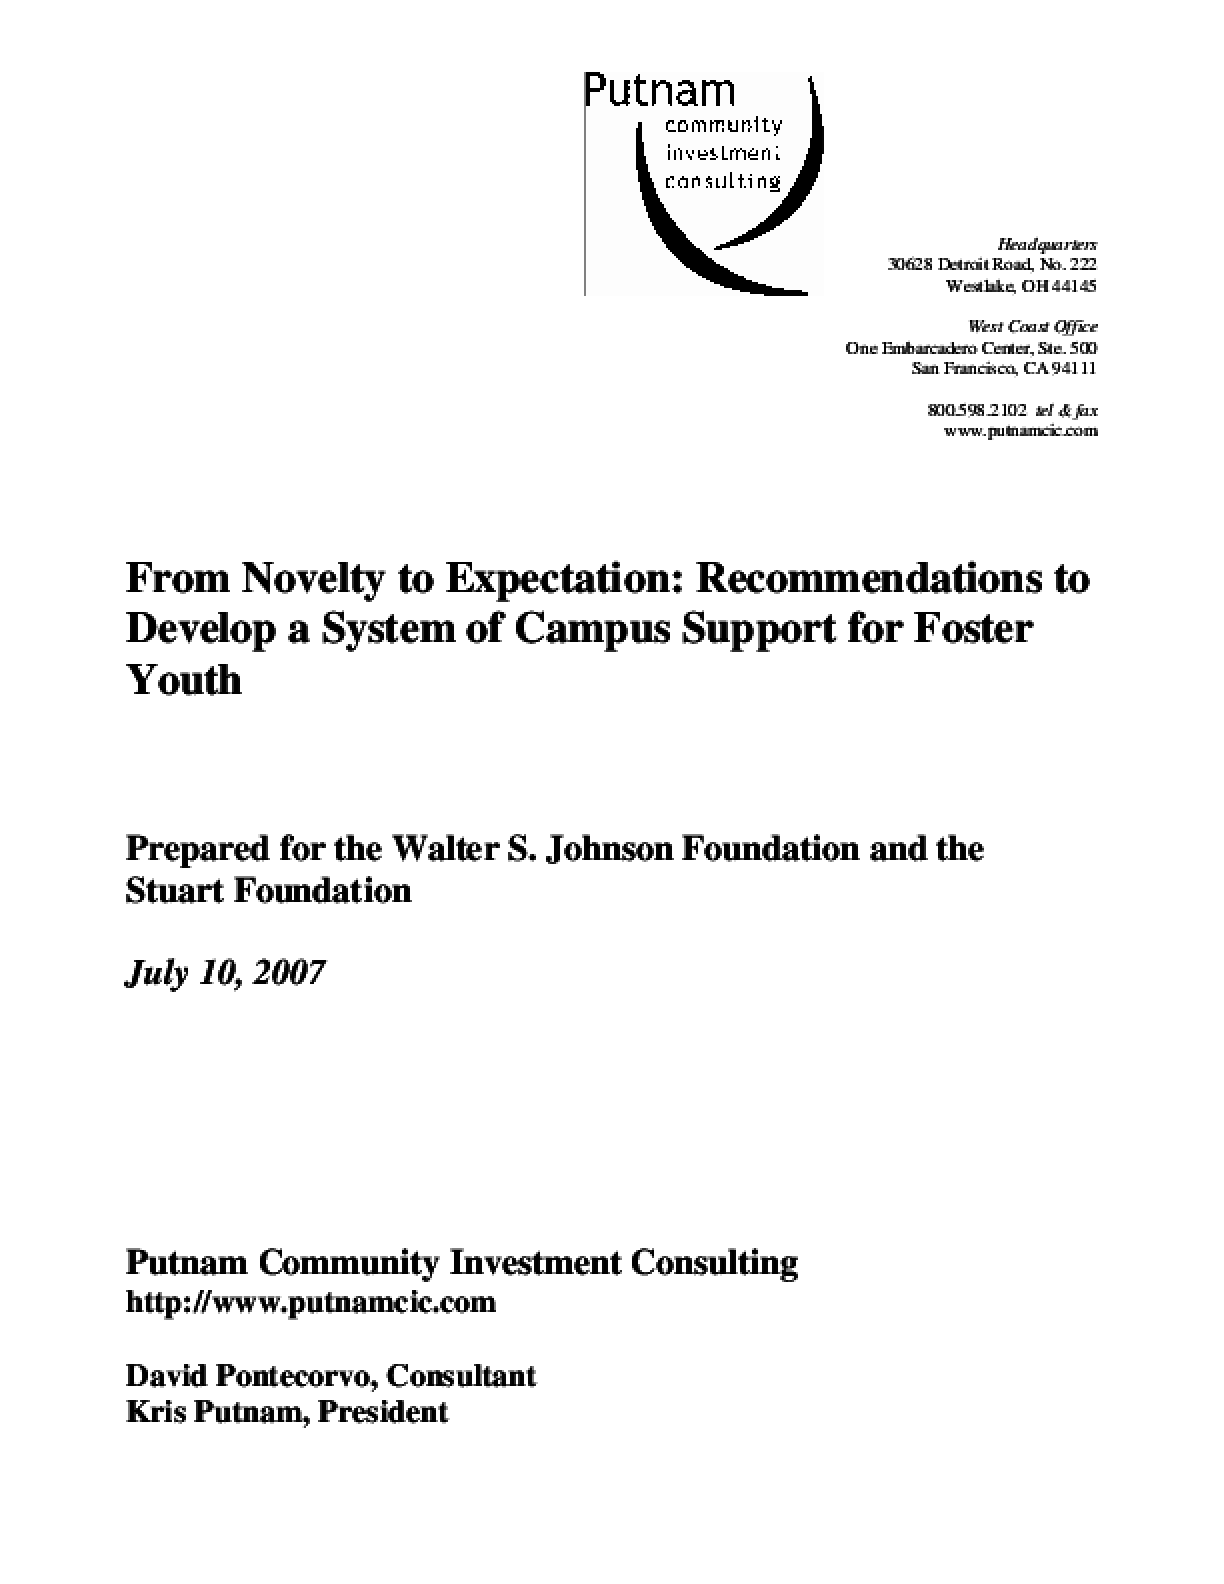 From Novelty to Expectation: Recommendations to Develop a System of Campus Support for Foster Youth